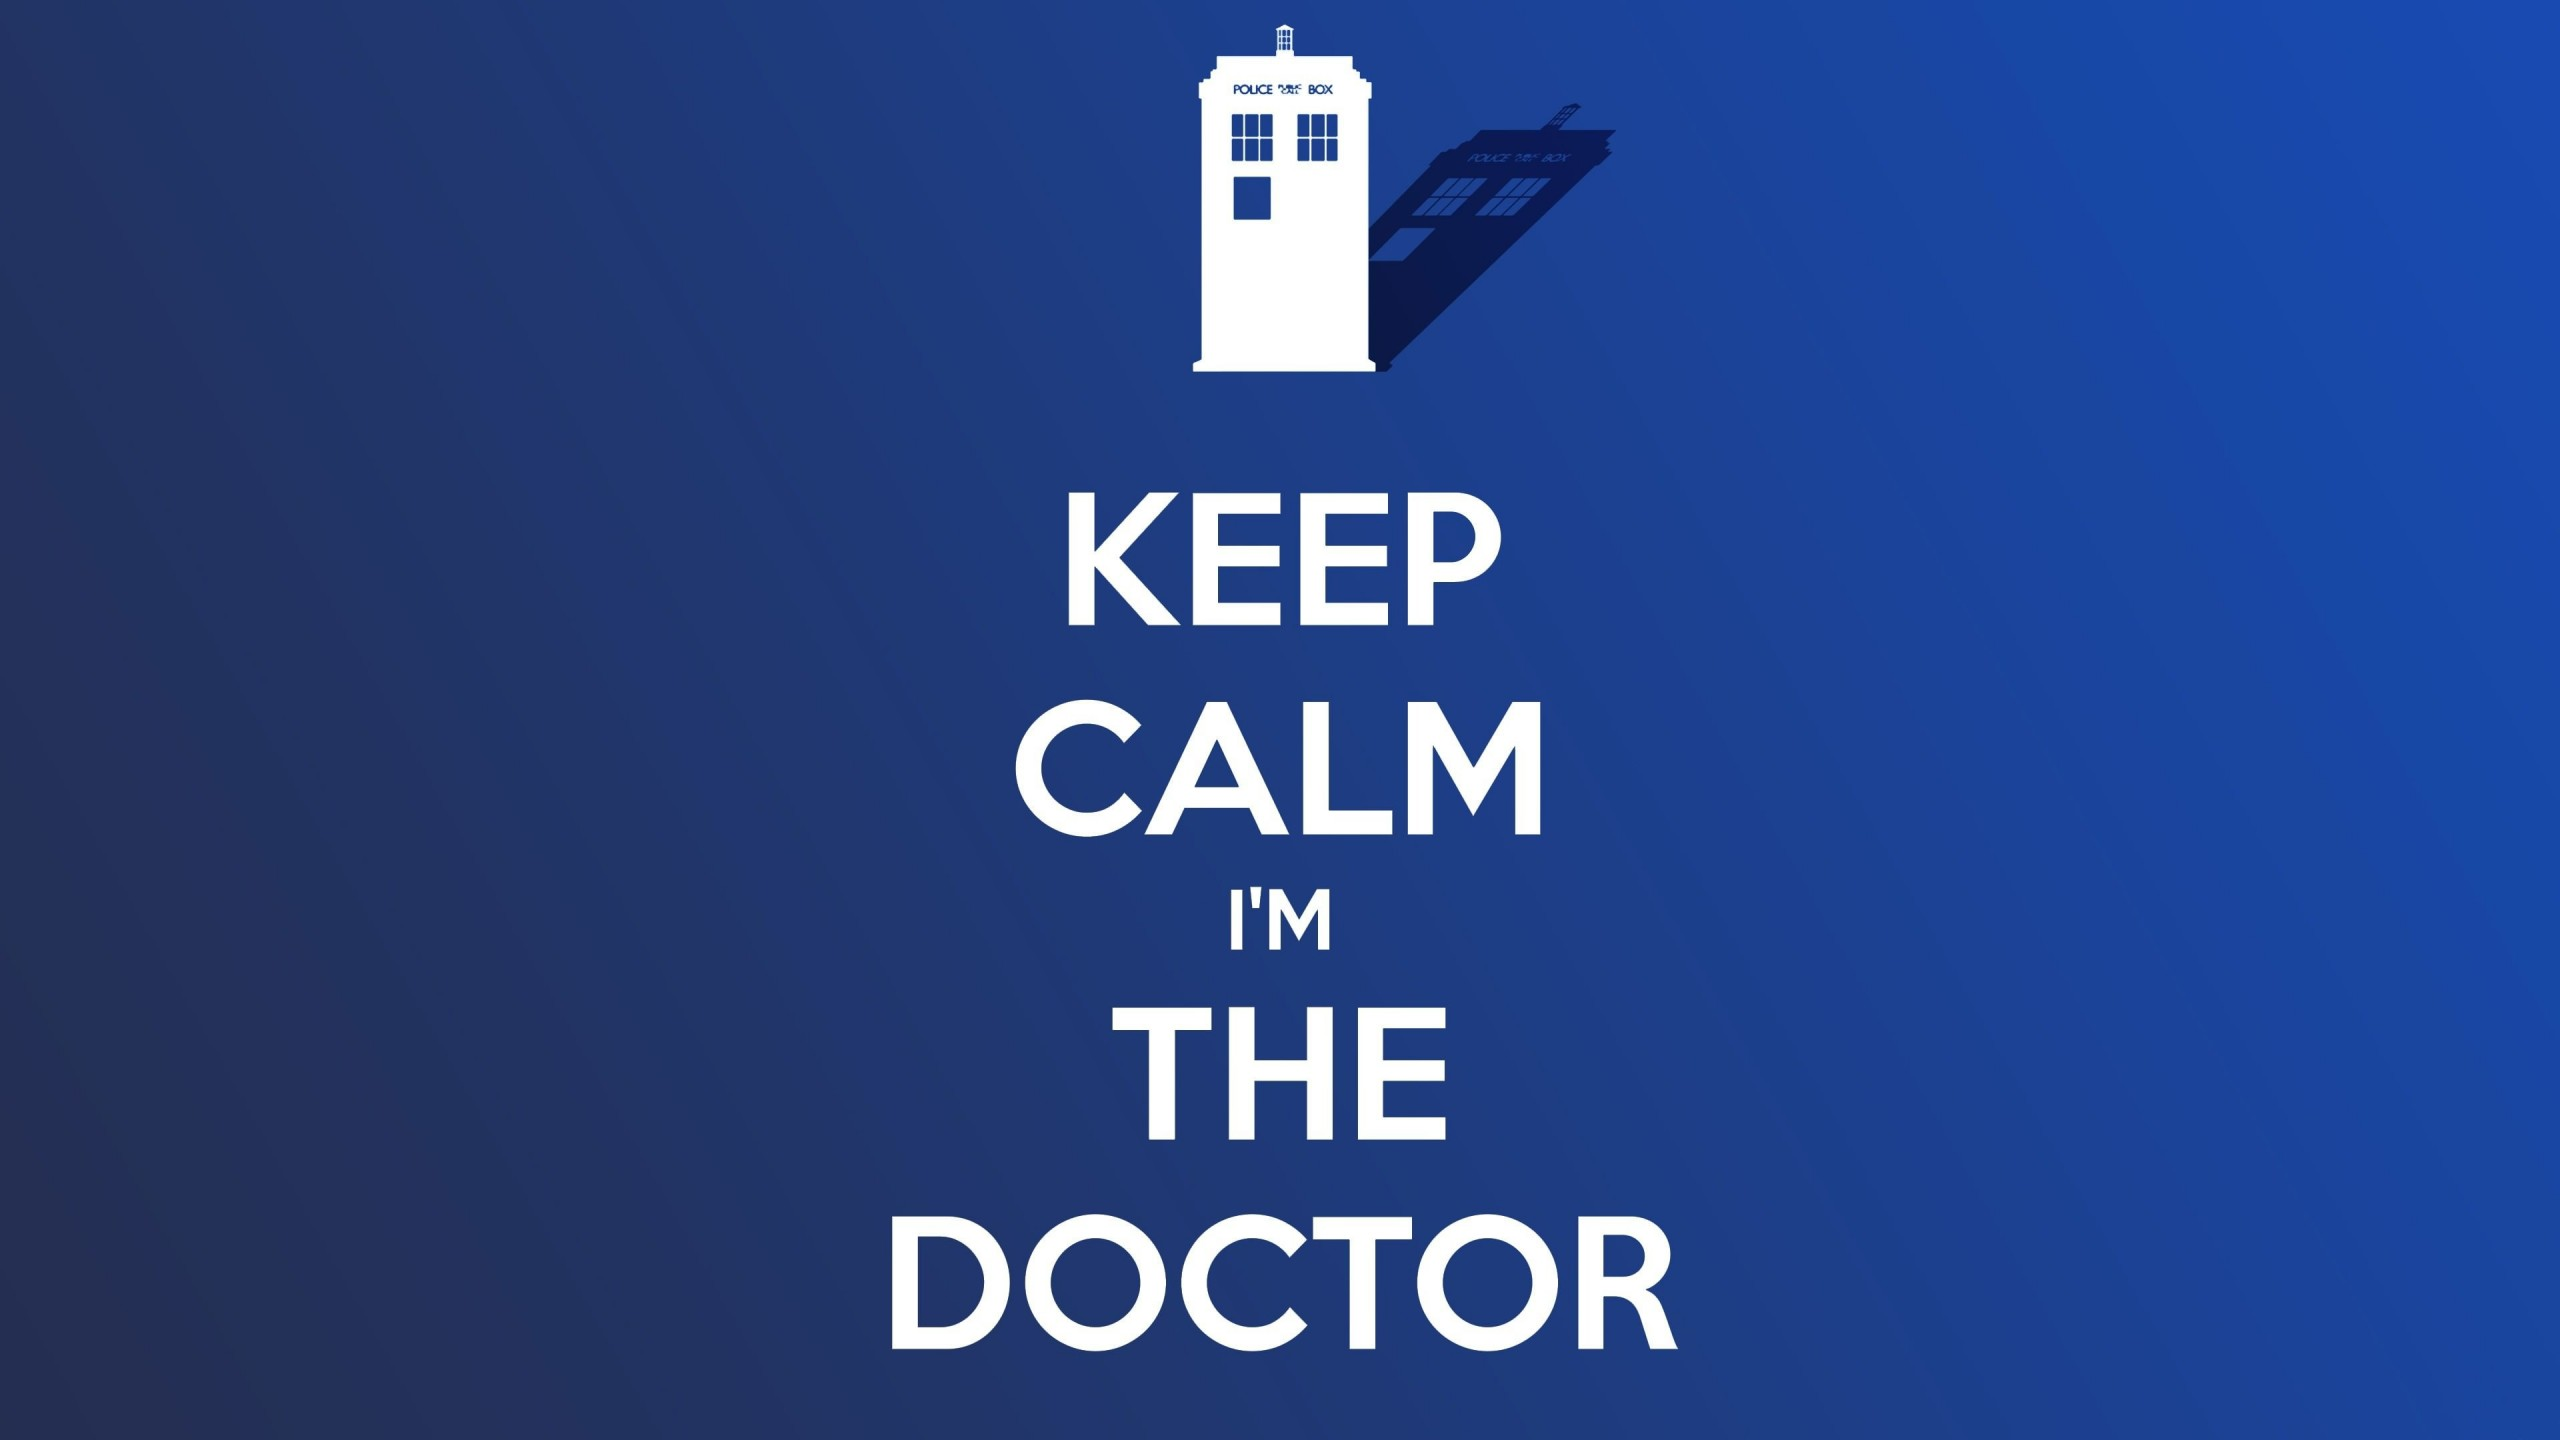 Keep Calm Im The Doctor Wallpaper for Social Media YouTube Channel Art